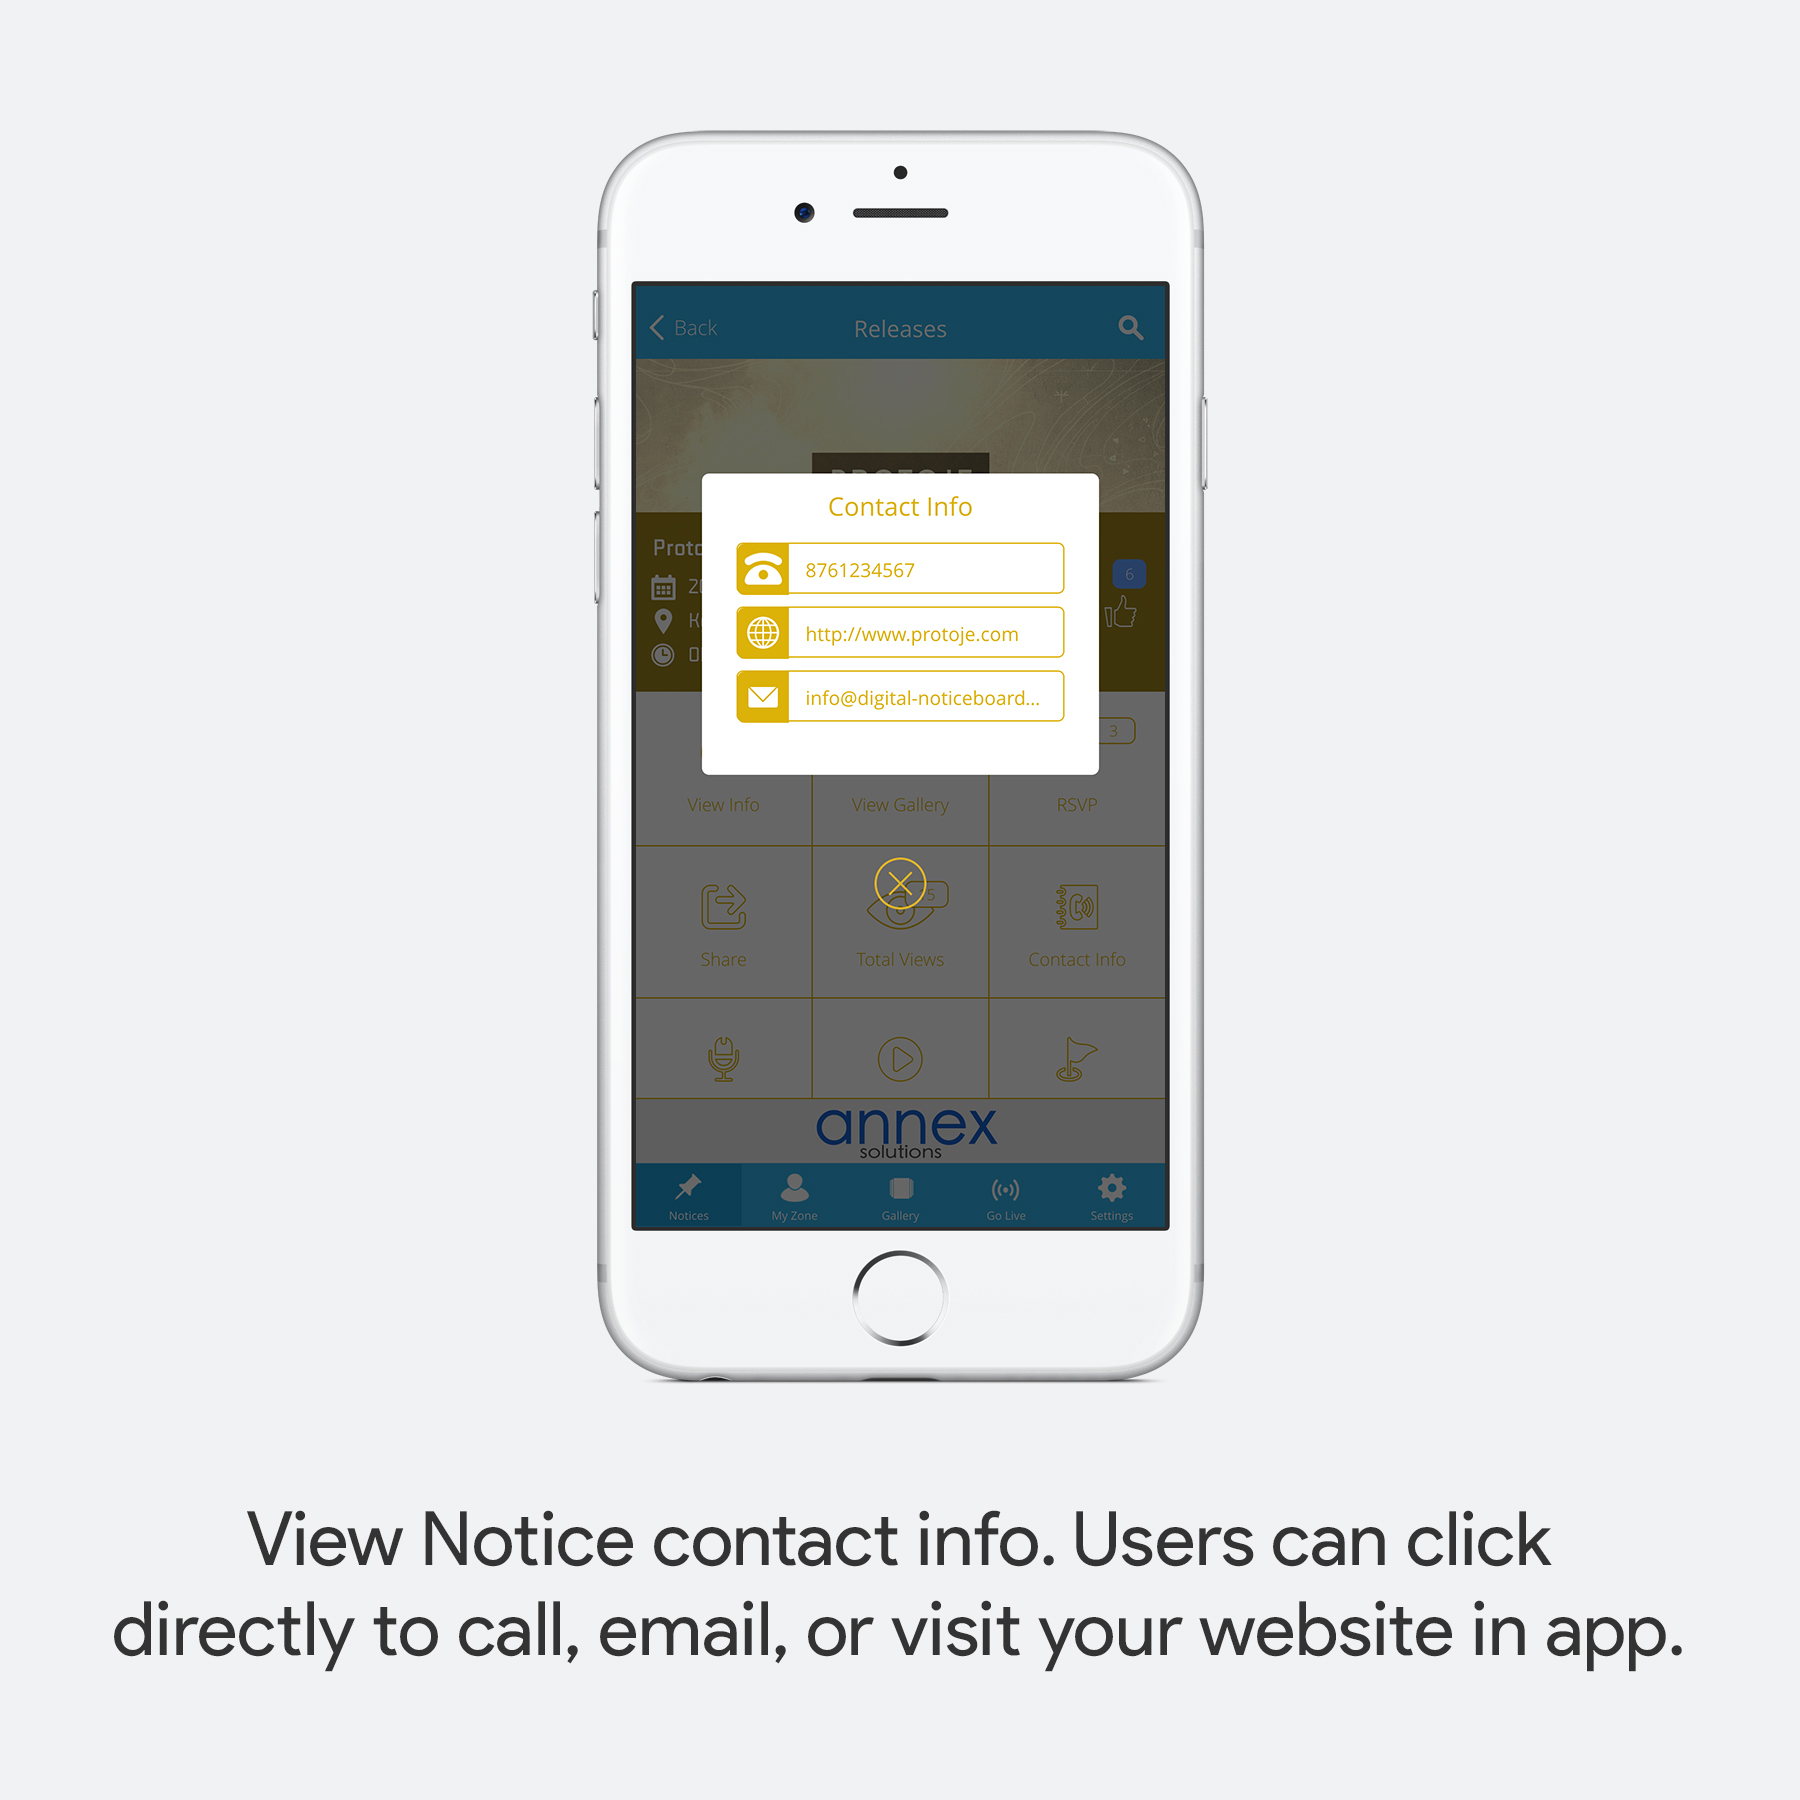 View Notice contact info. Users can click directly to call, email, or visit your website in app.